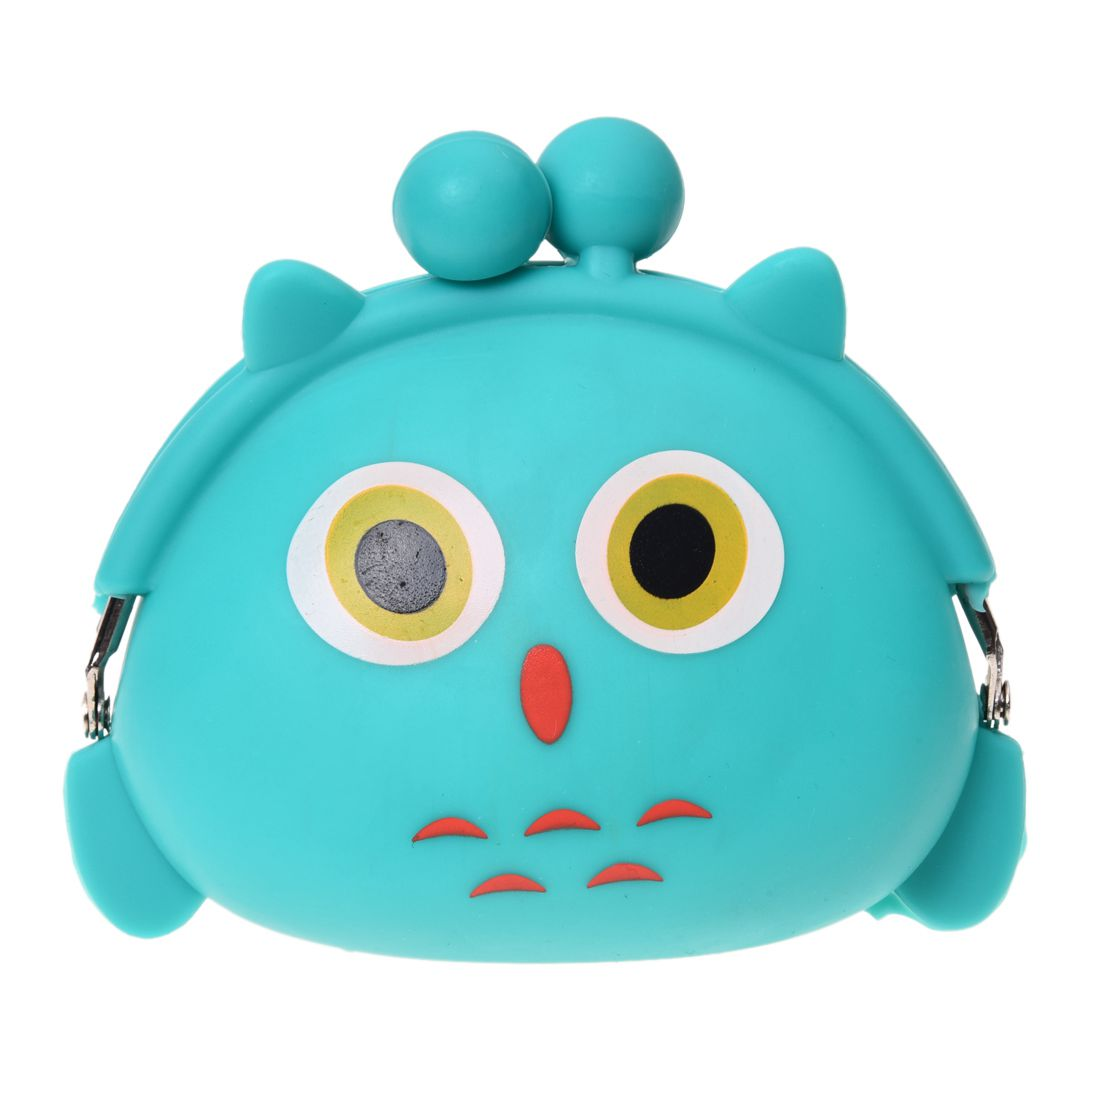 SNNY -Women Girls Wallet Kawaii Cute Cartoon Animal Silicone Jelly Coin Bag Purse Kids Gift Owl